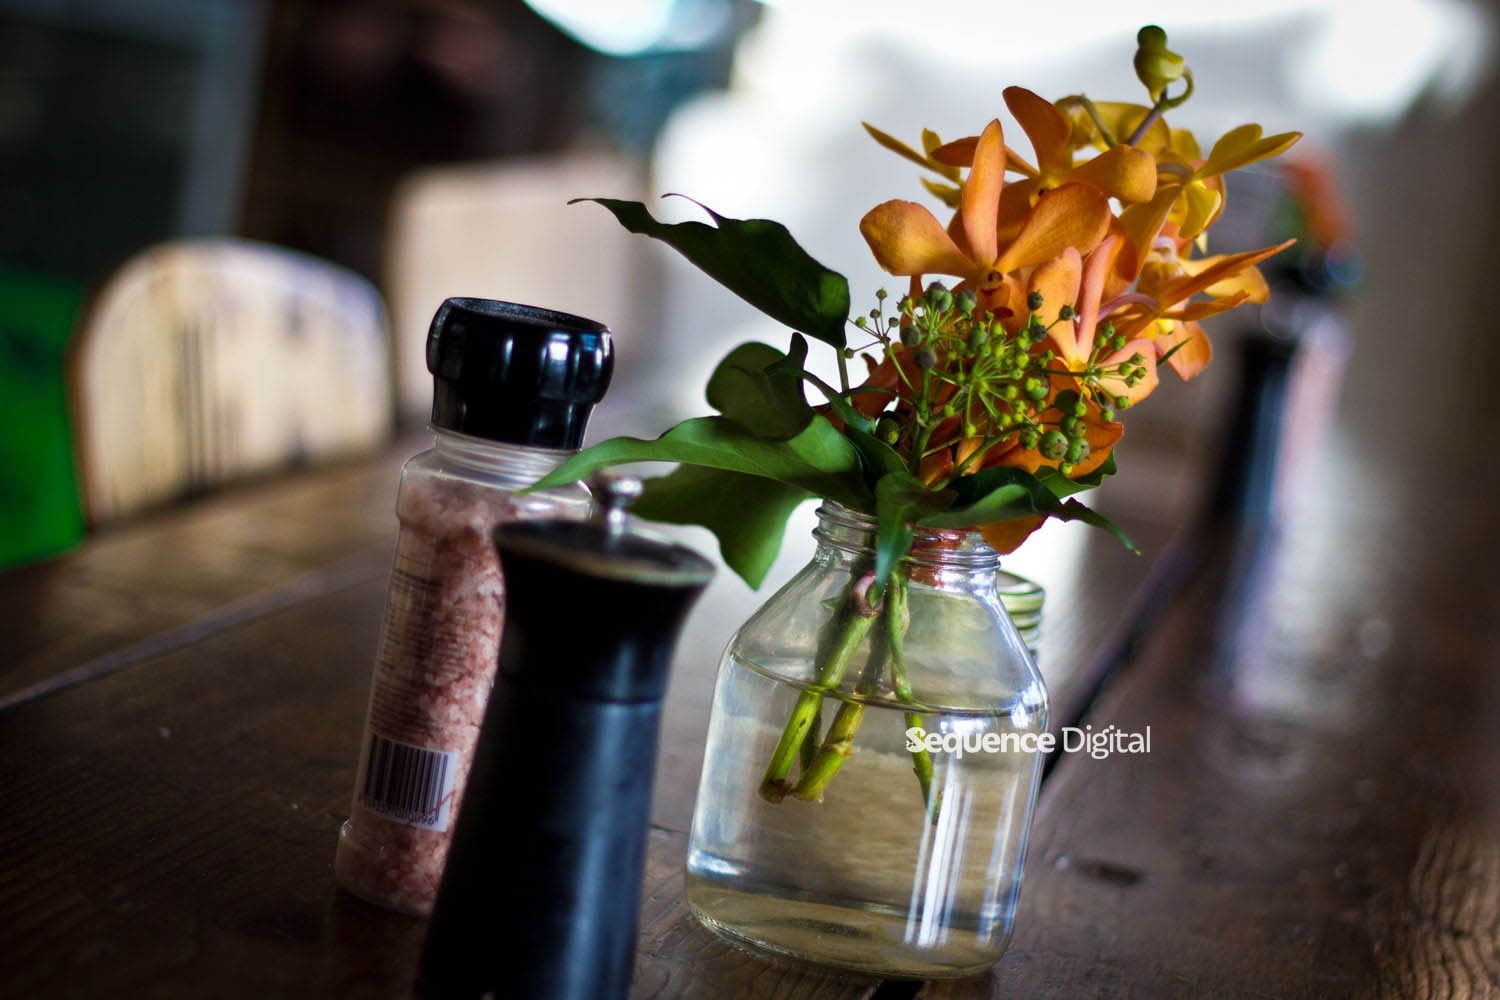 63 Degrees Cafe Geelong - Table Flowers